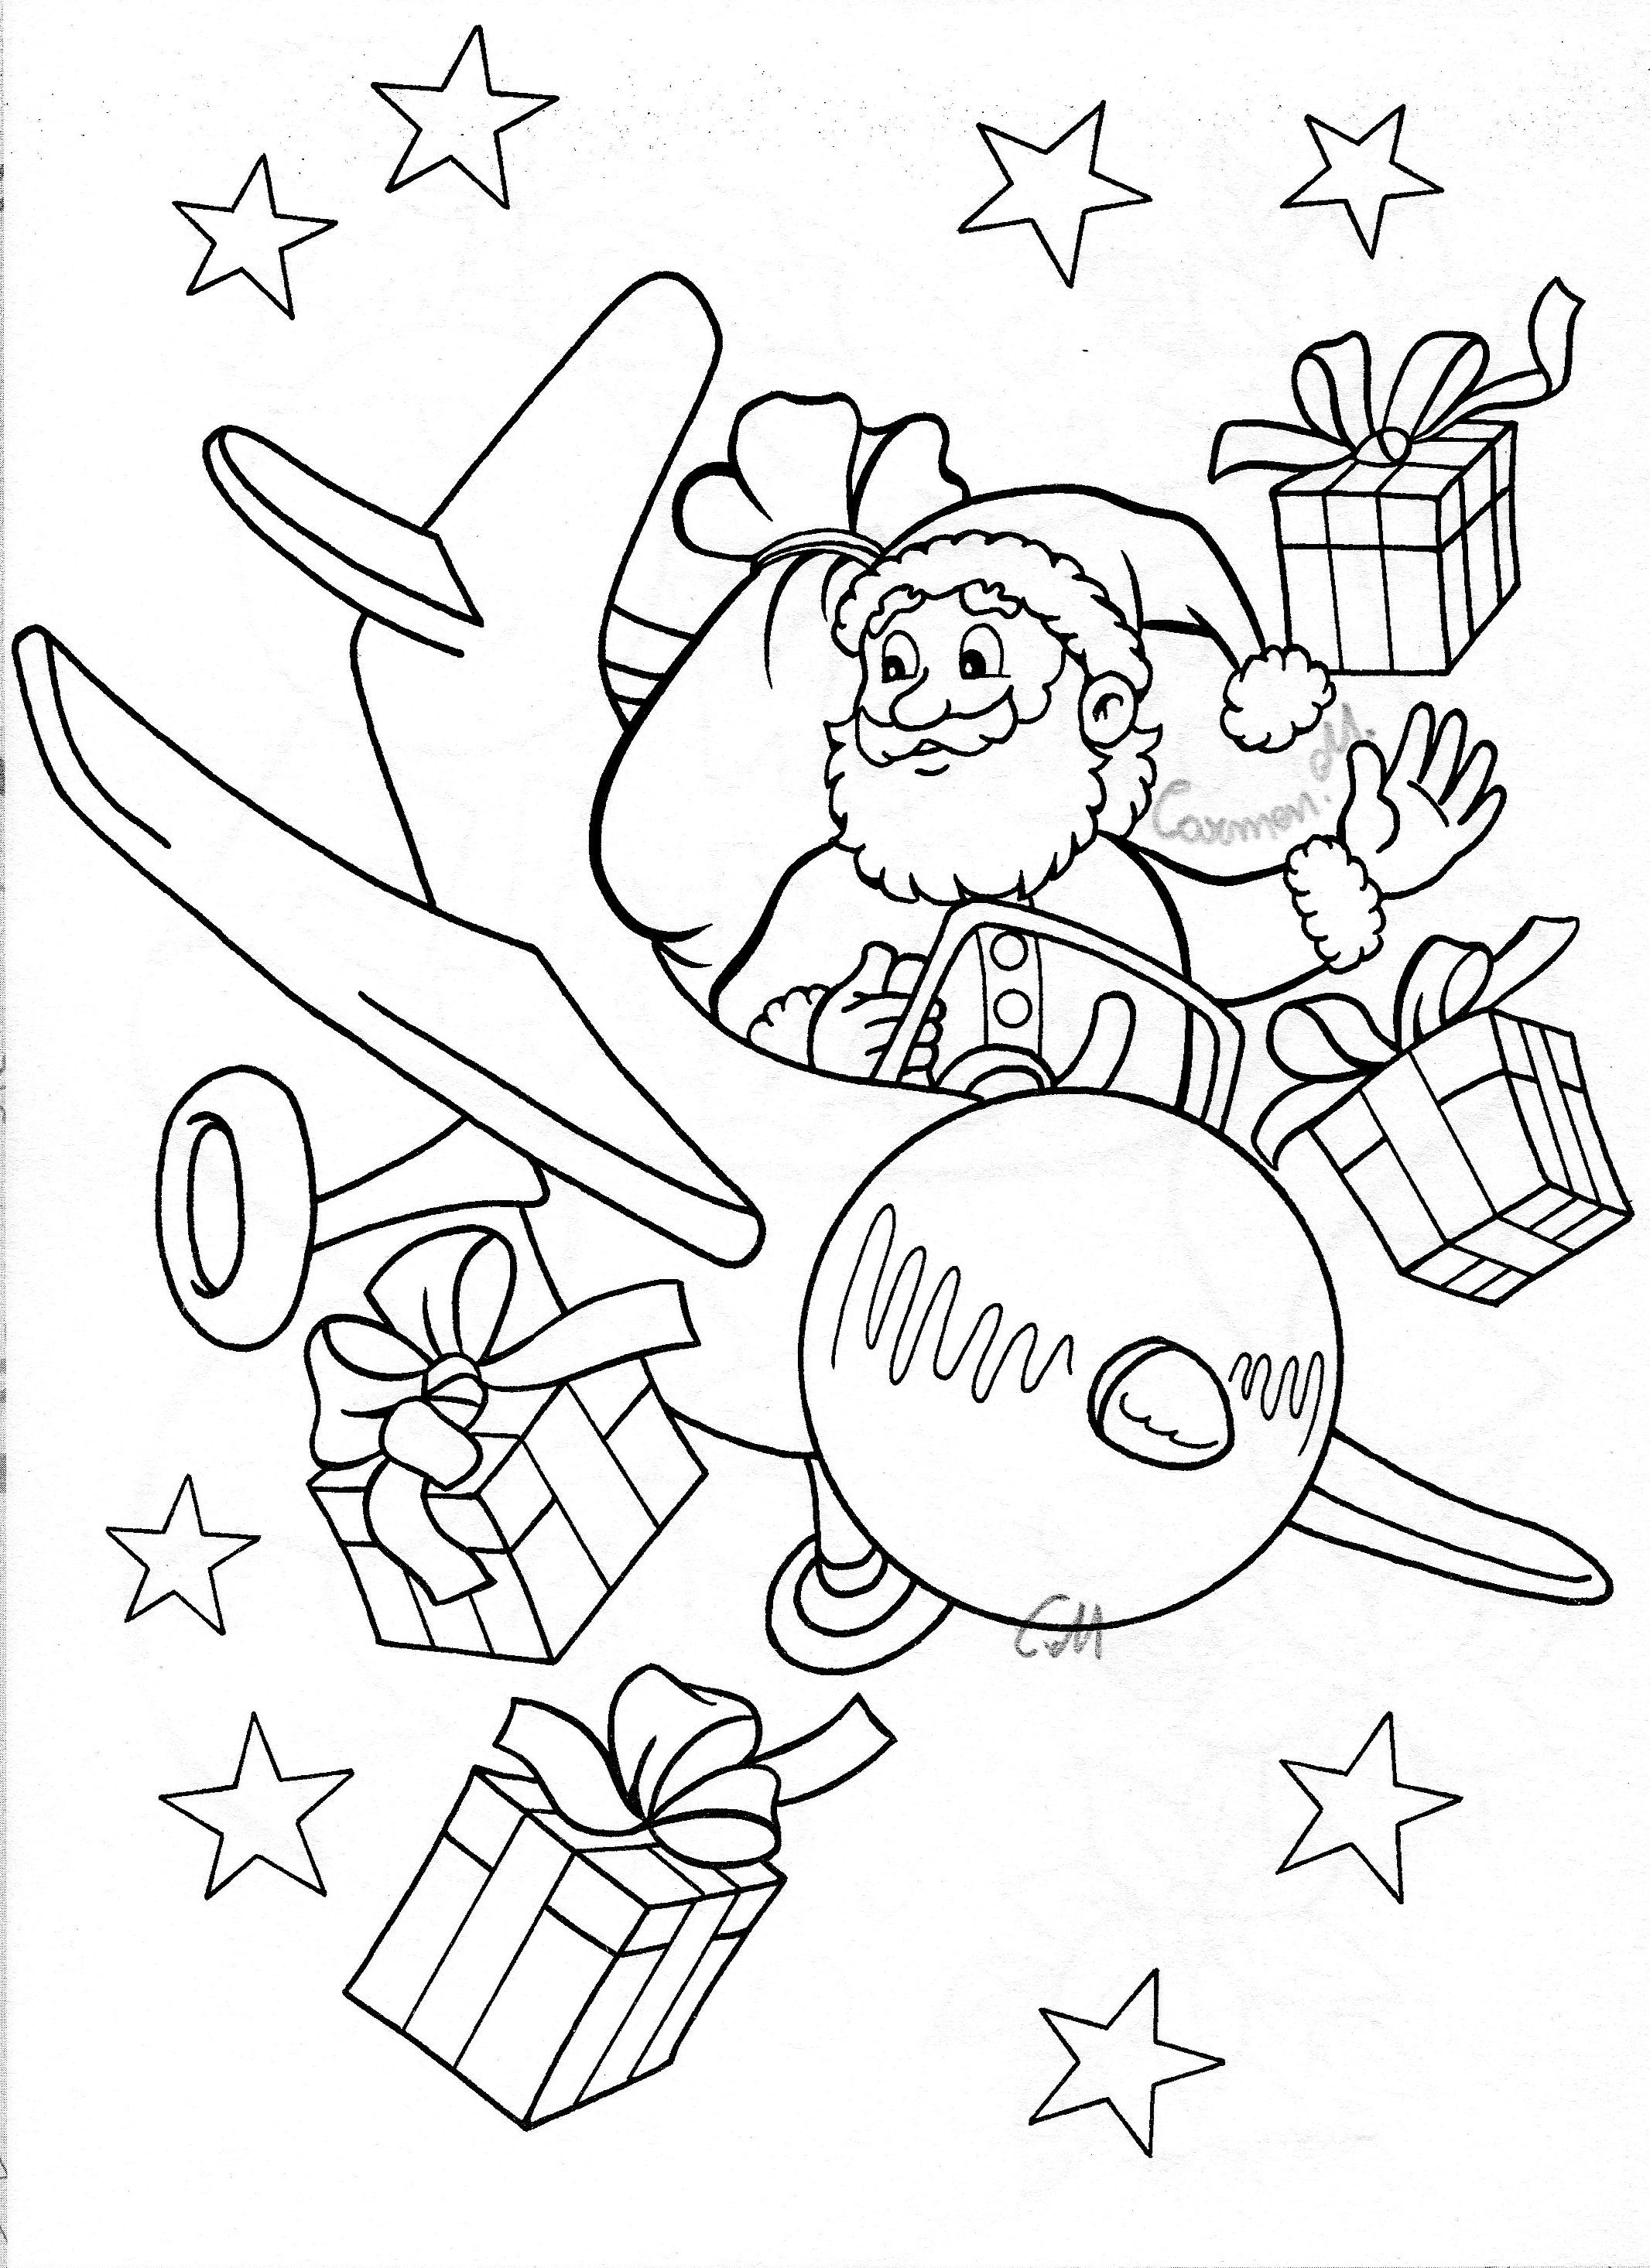 Christmas Colouring Pages And Puzzles With Pin By Kaylie Taylor On The Big Puzzle Book